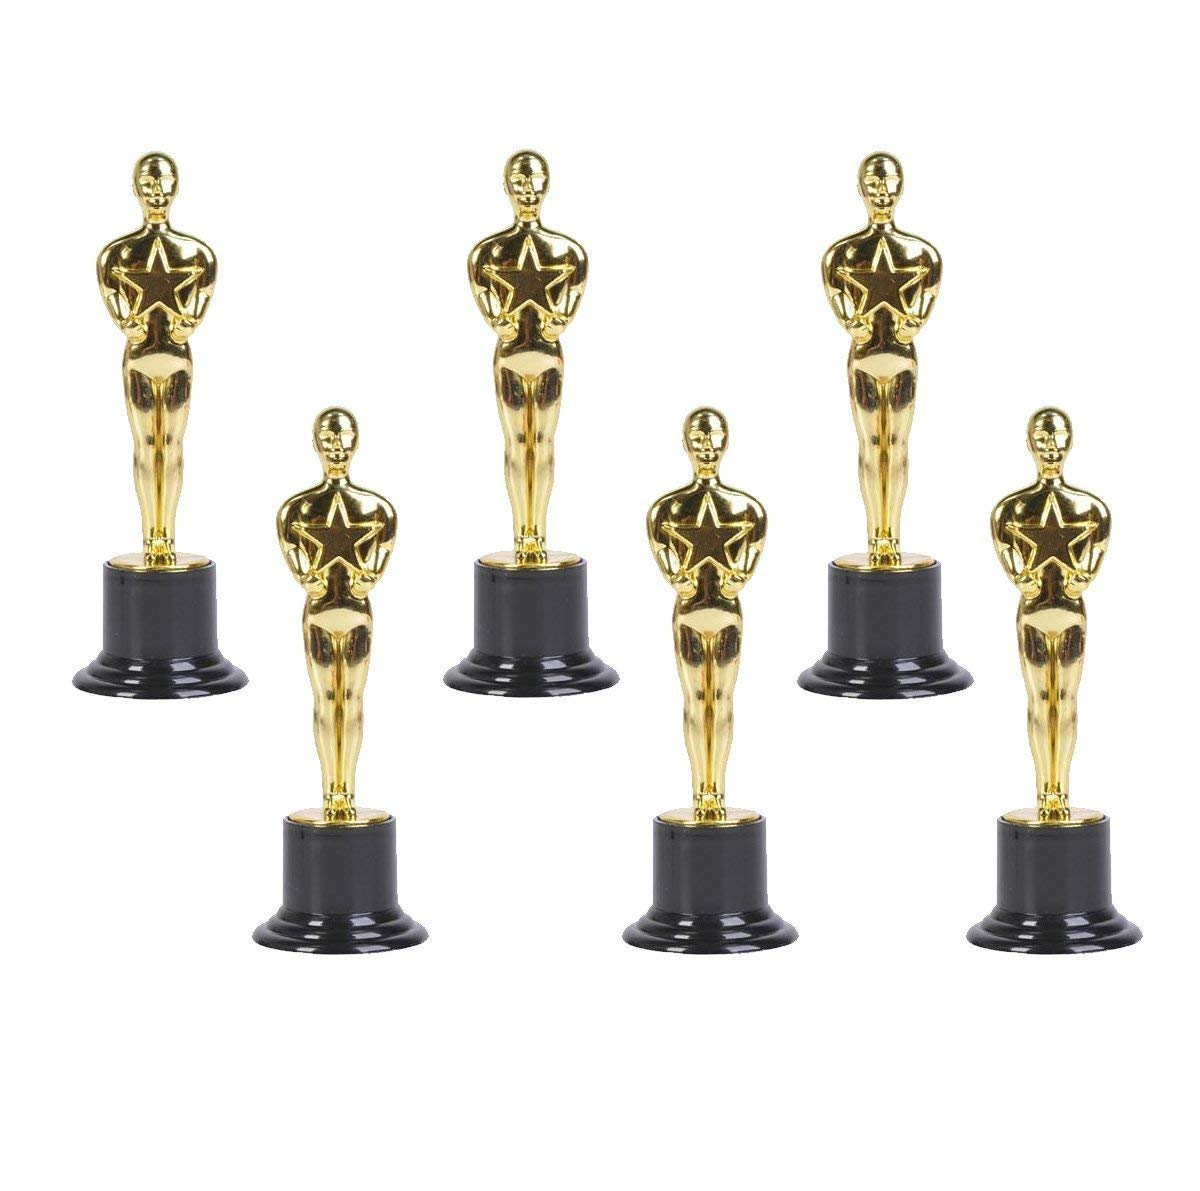 "Oscar Gold Award Trophies, 6"" Trophy Statues - Oscar Statues - Awards for Party Celebrations, Appreciation Gift, Sport Awards, Academy Awards, Awards for Teachers and Students (Set of 12) By Neliblu"